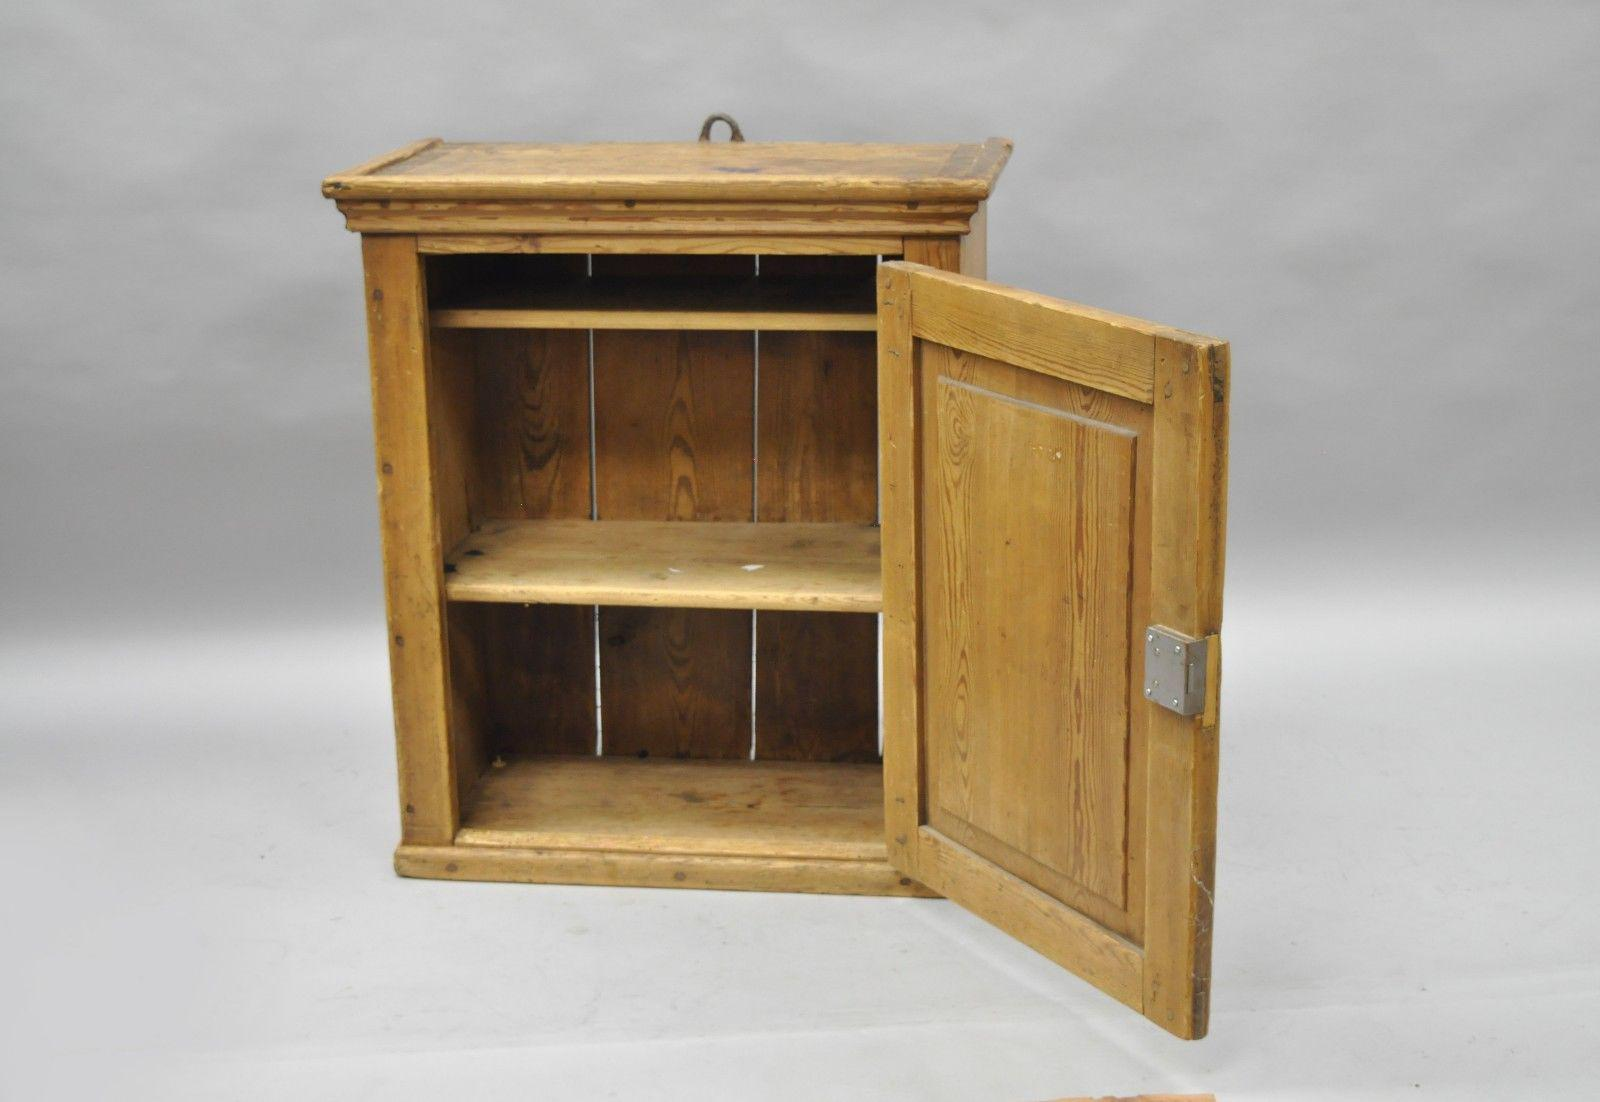 Primitive Antique Primitive Rustic Pine Wood Wall Hanging Cupboard Pantry  Hutch For Sale   Image 3